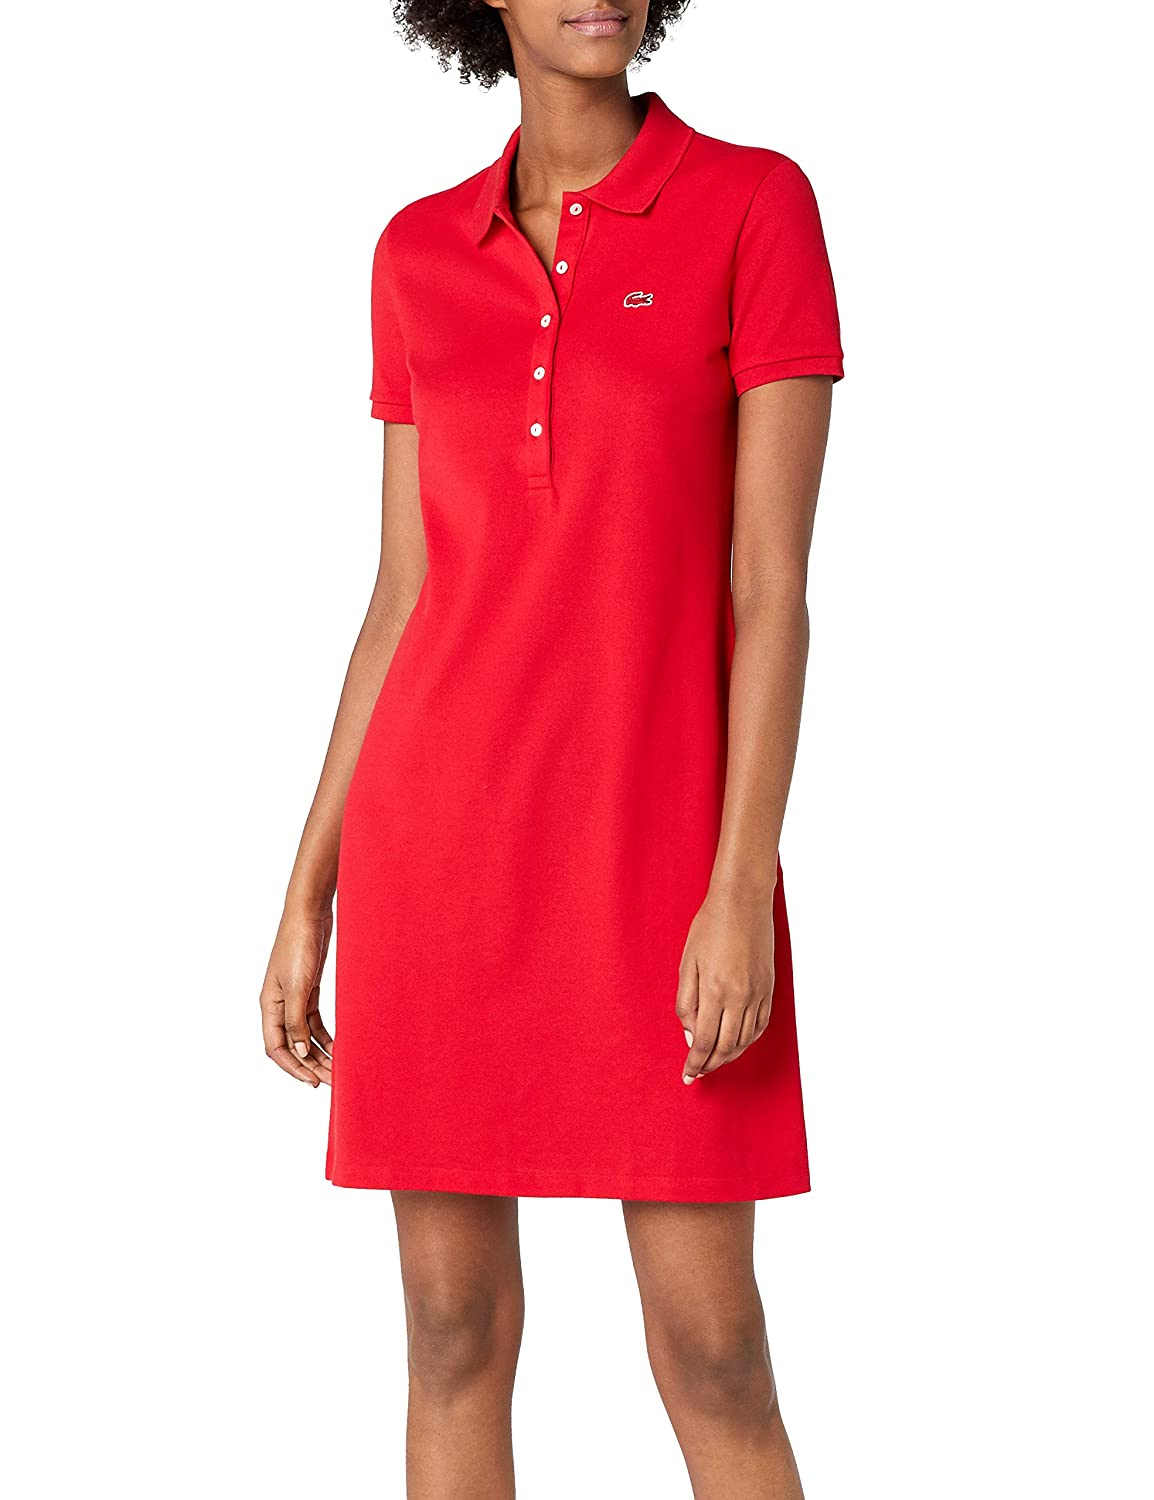 Red (Toréador) Lacoste Women's Ef8470 KneeLength Fit Slim Dress